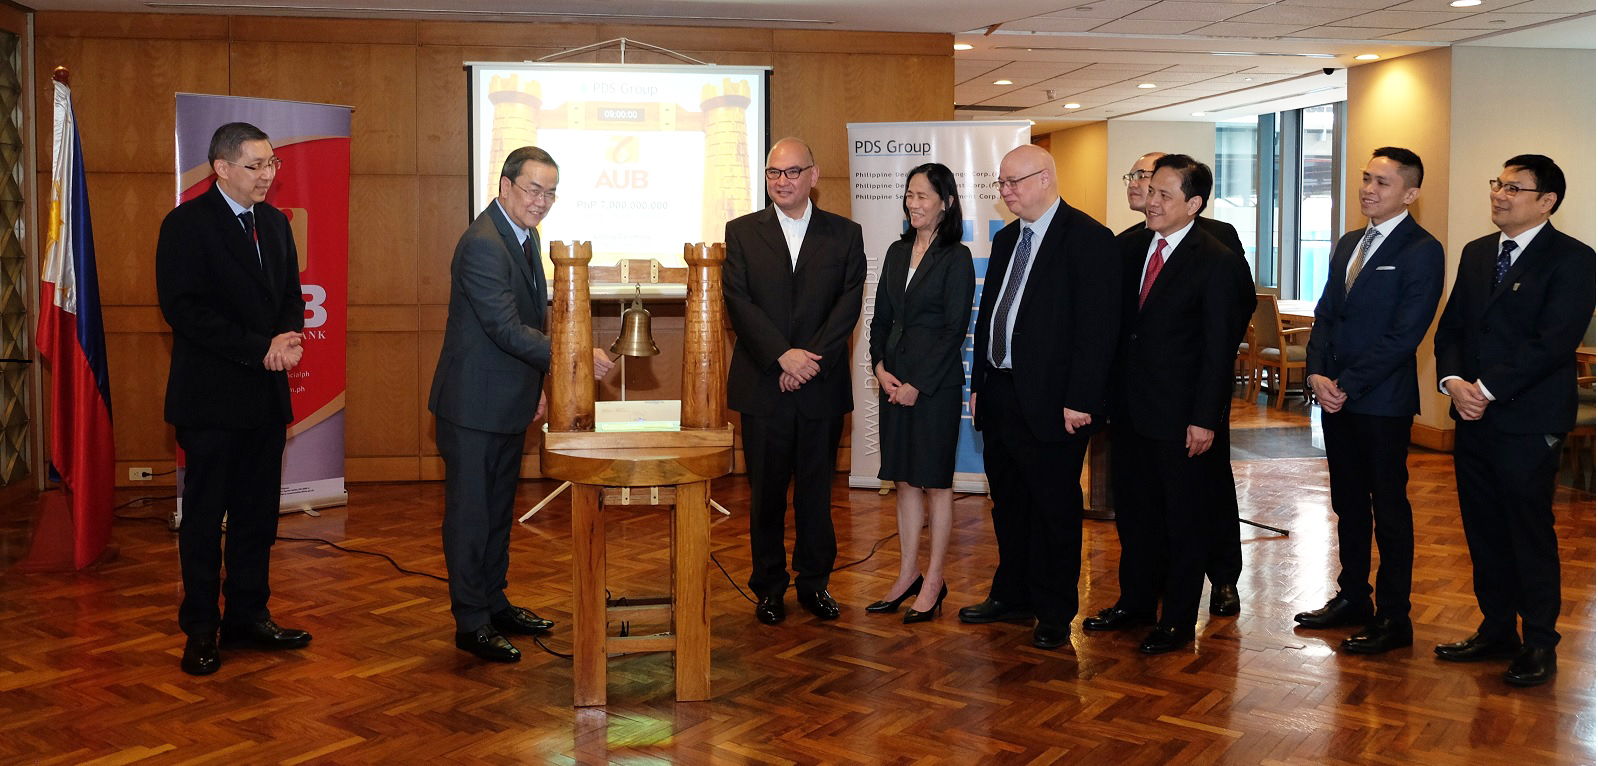 In the photo from left are:  China Banking Corporation Chief Finance Officer (CFO) Patrick Cheng, Asia United Bank Corporation (AUB) President Manuel Gomez, AUB Executive Vice President (EVP) and Treasury Group Head Antonio Agcaoili, PDS Group President Ma. Theresa Ravalo, Philippine Dealing & Exchange Corp. (PDEx) President and Chief Operating Officer Antonino Nakpil, First Metro Investment Corporation President Rabboni Francis Arjonillo, AUB Senior Vice President and Branch Banking Head Jacob Ng, AUB First Vice President and Investment Banking Head Abel Dorotan, and Amalgamated Investment Bancorporation EVP and CFO Servando Alvarez, Jr.